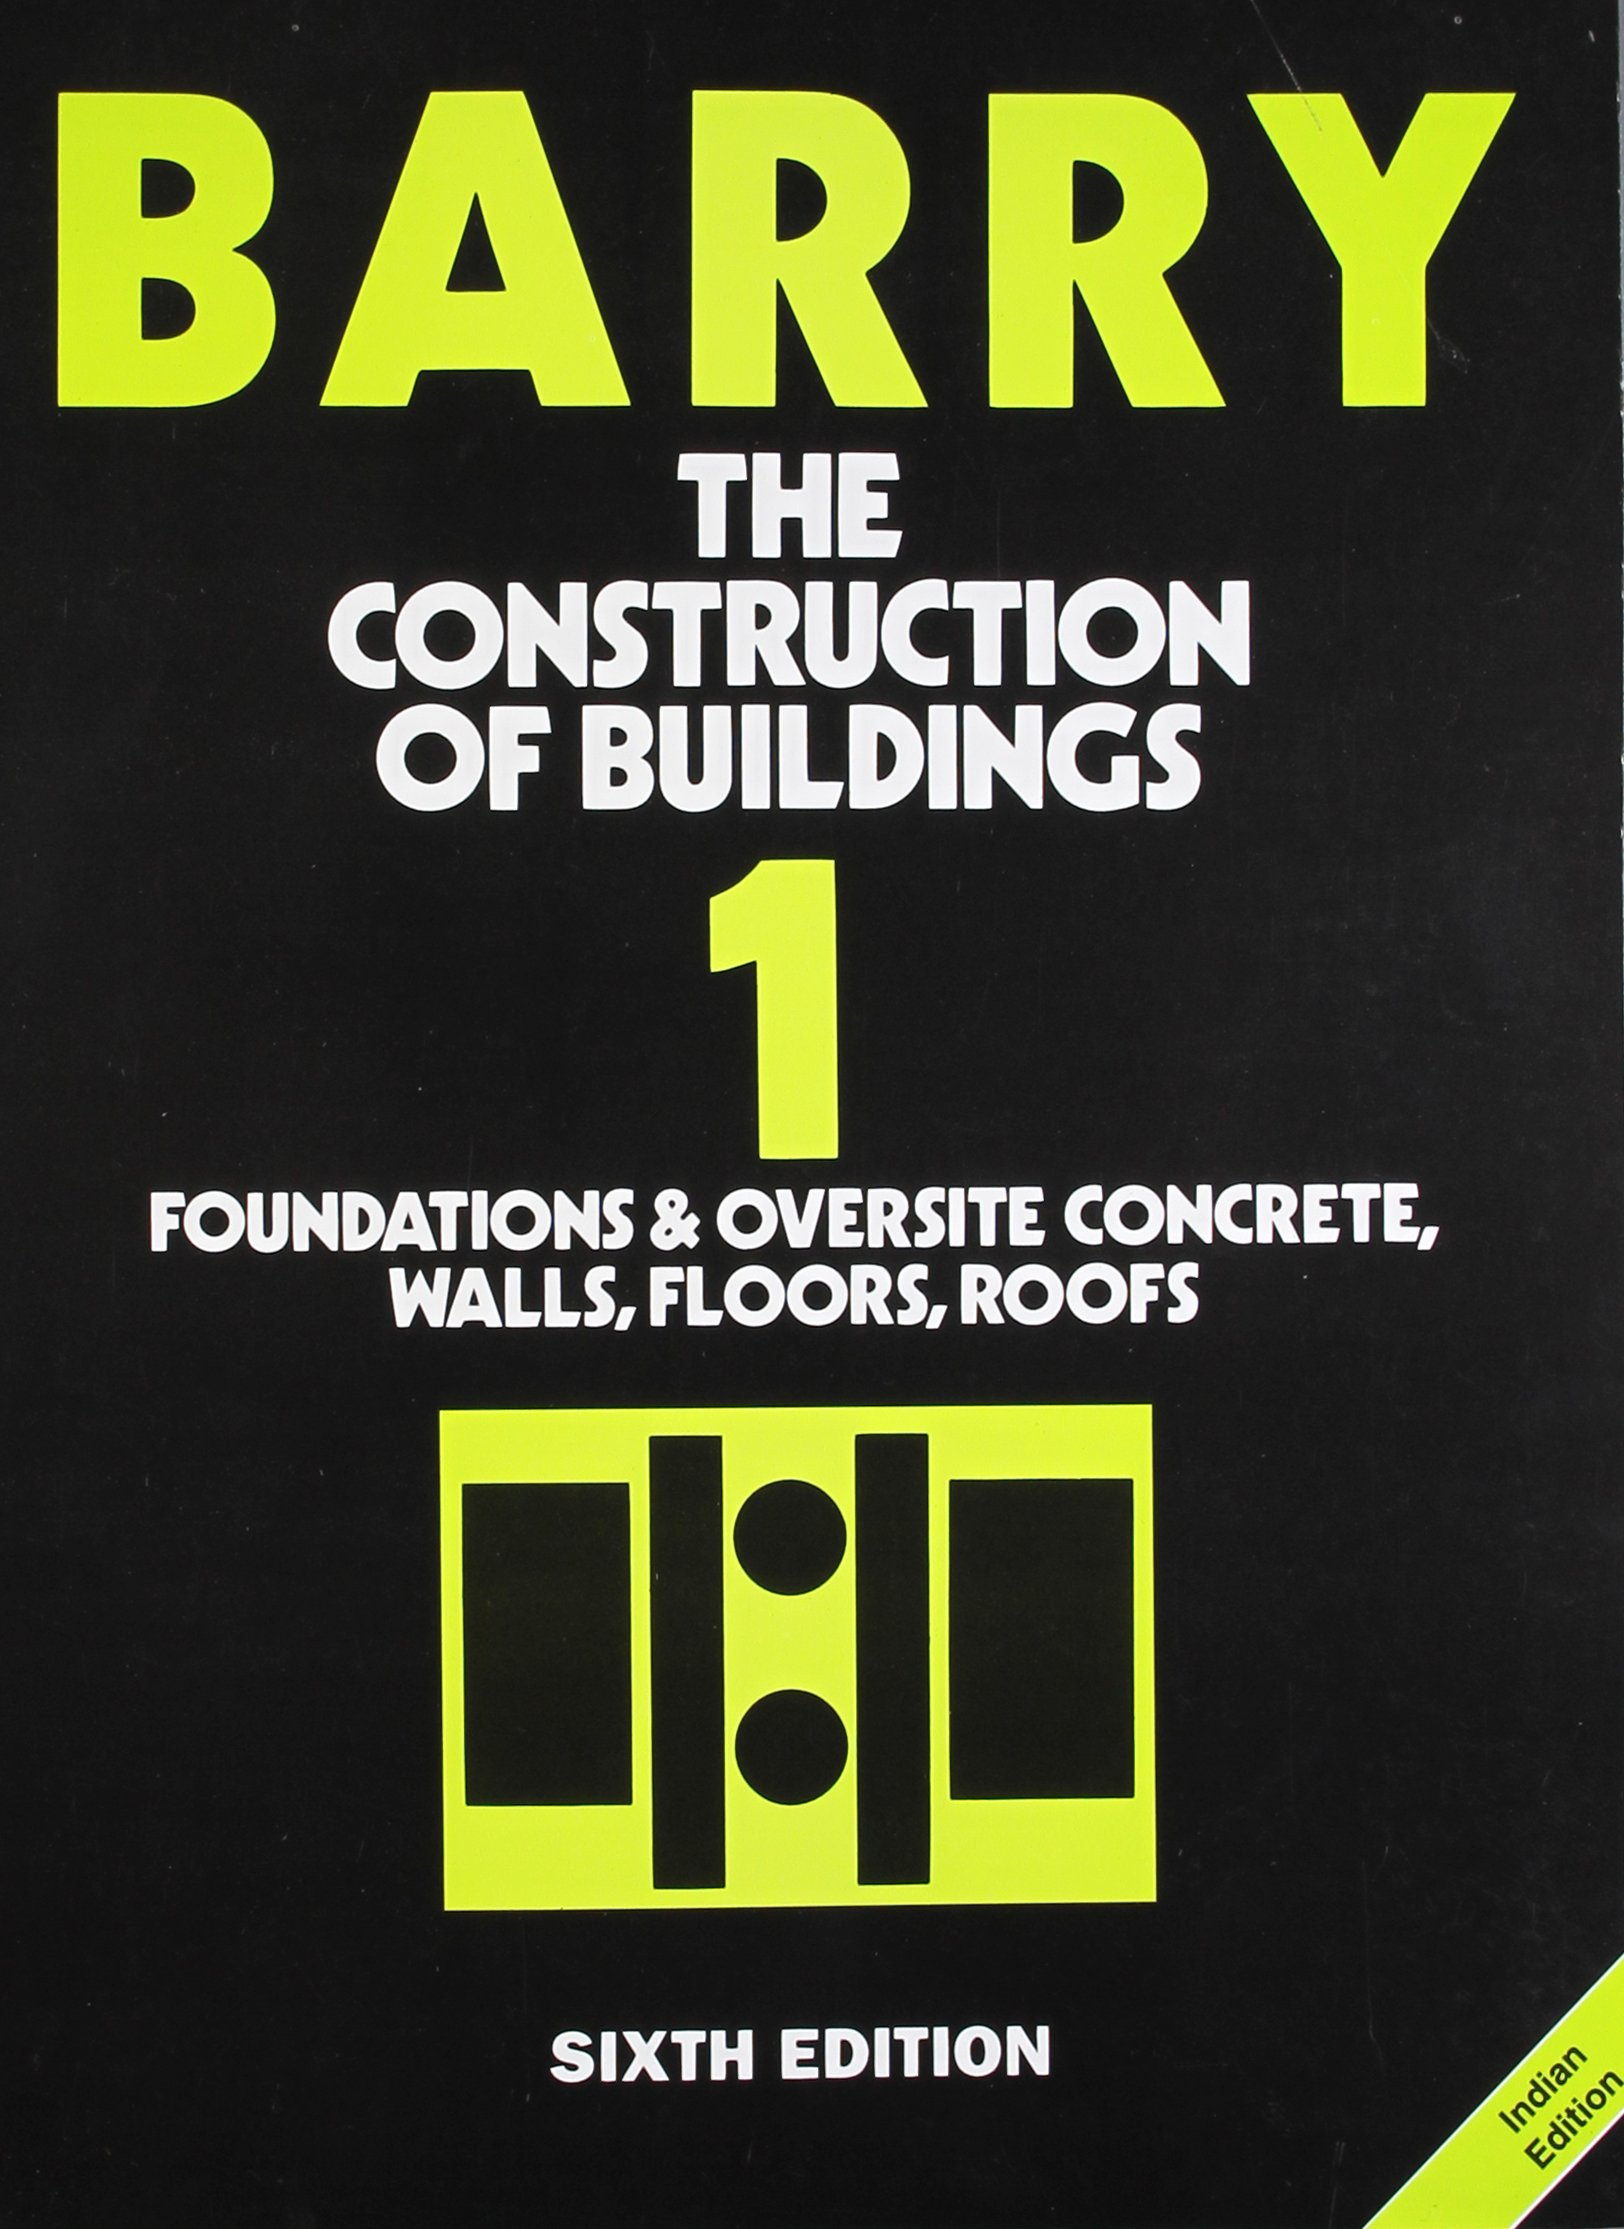 Book Review: Barry The Construction Of Buildings